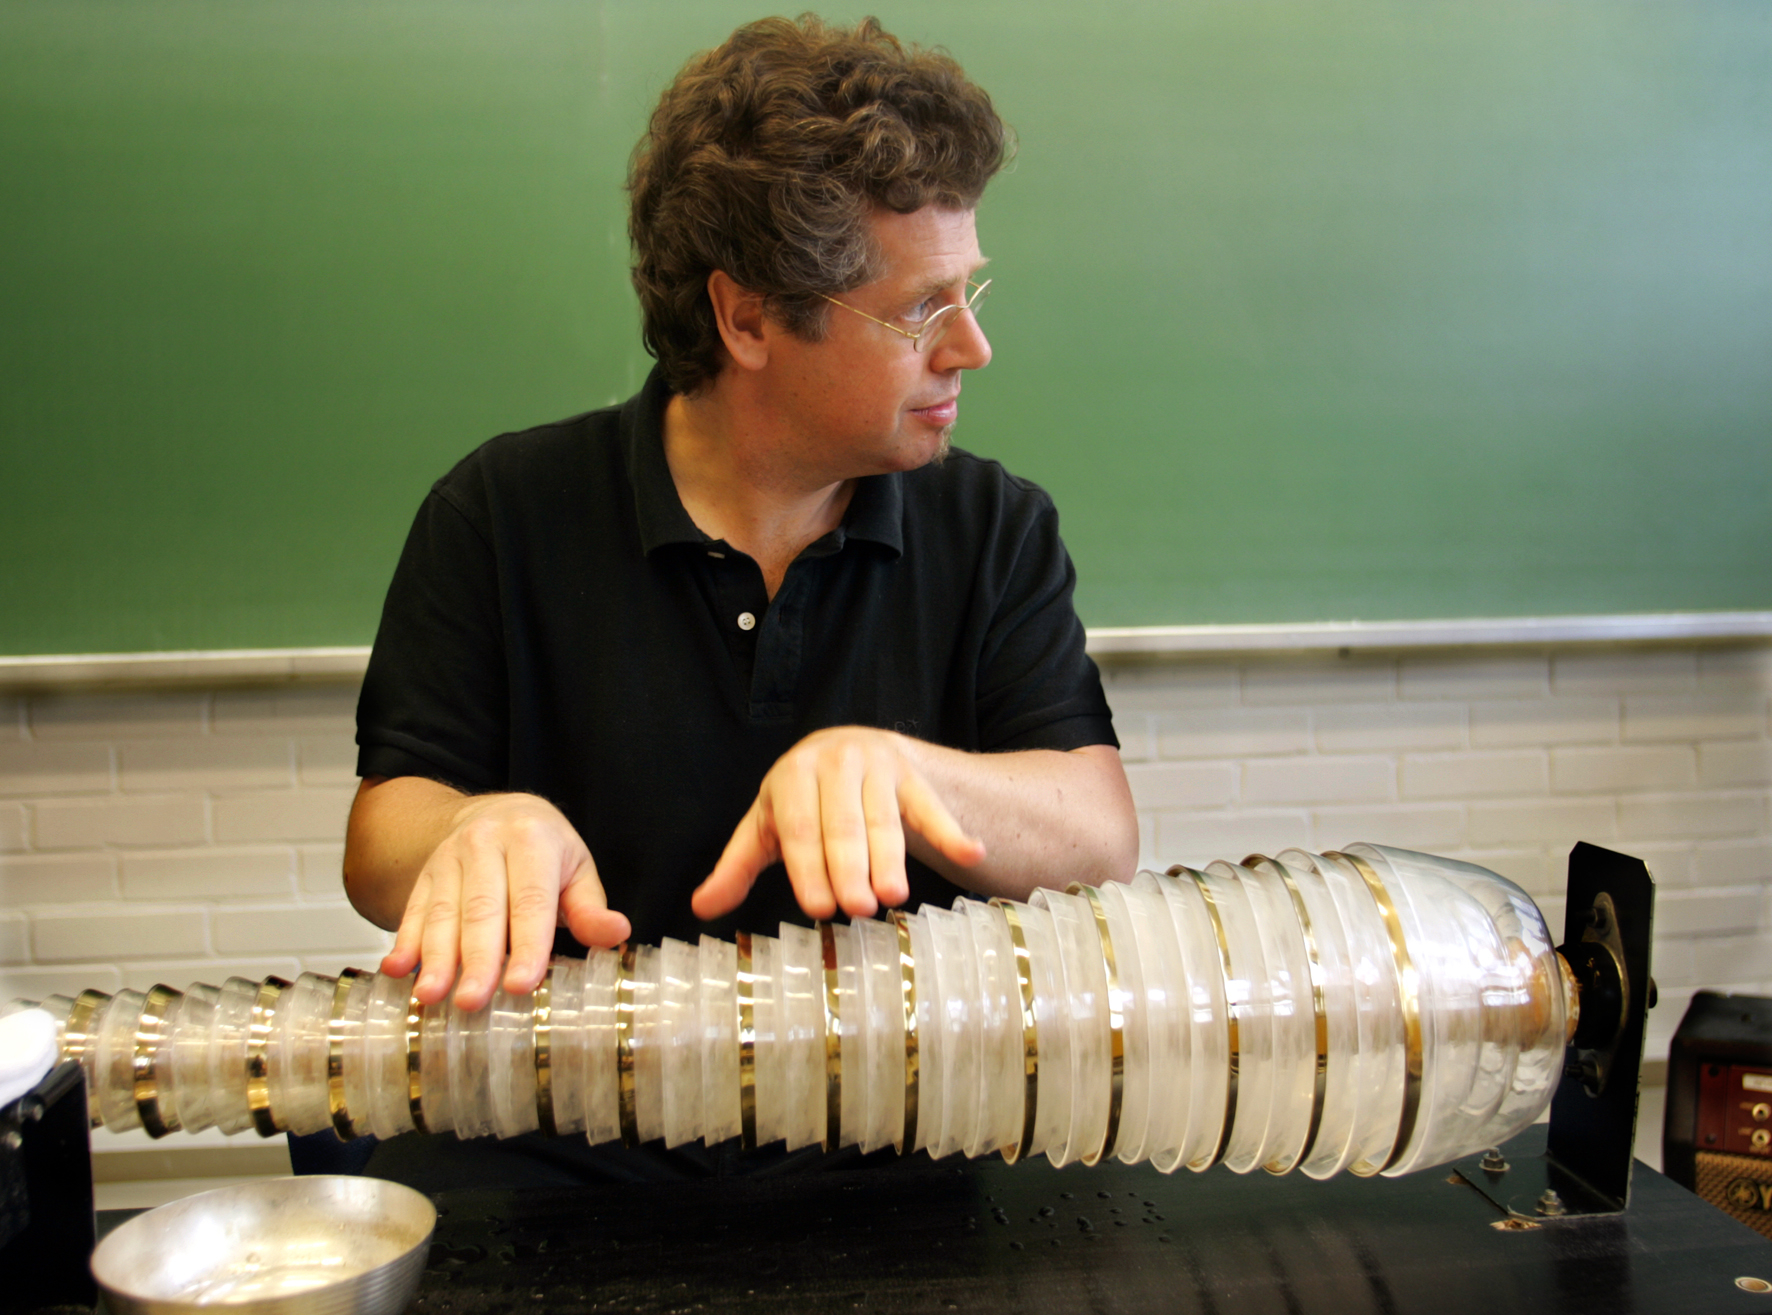 Thomas Bloch glass harmonica